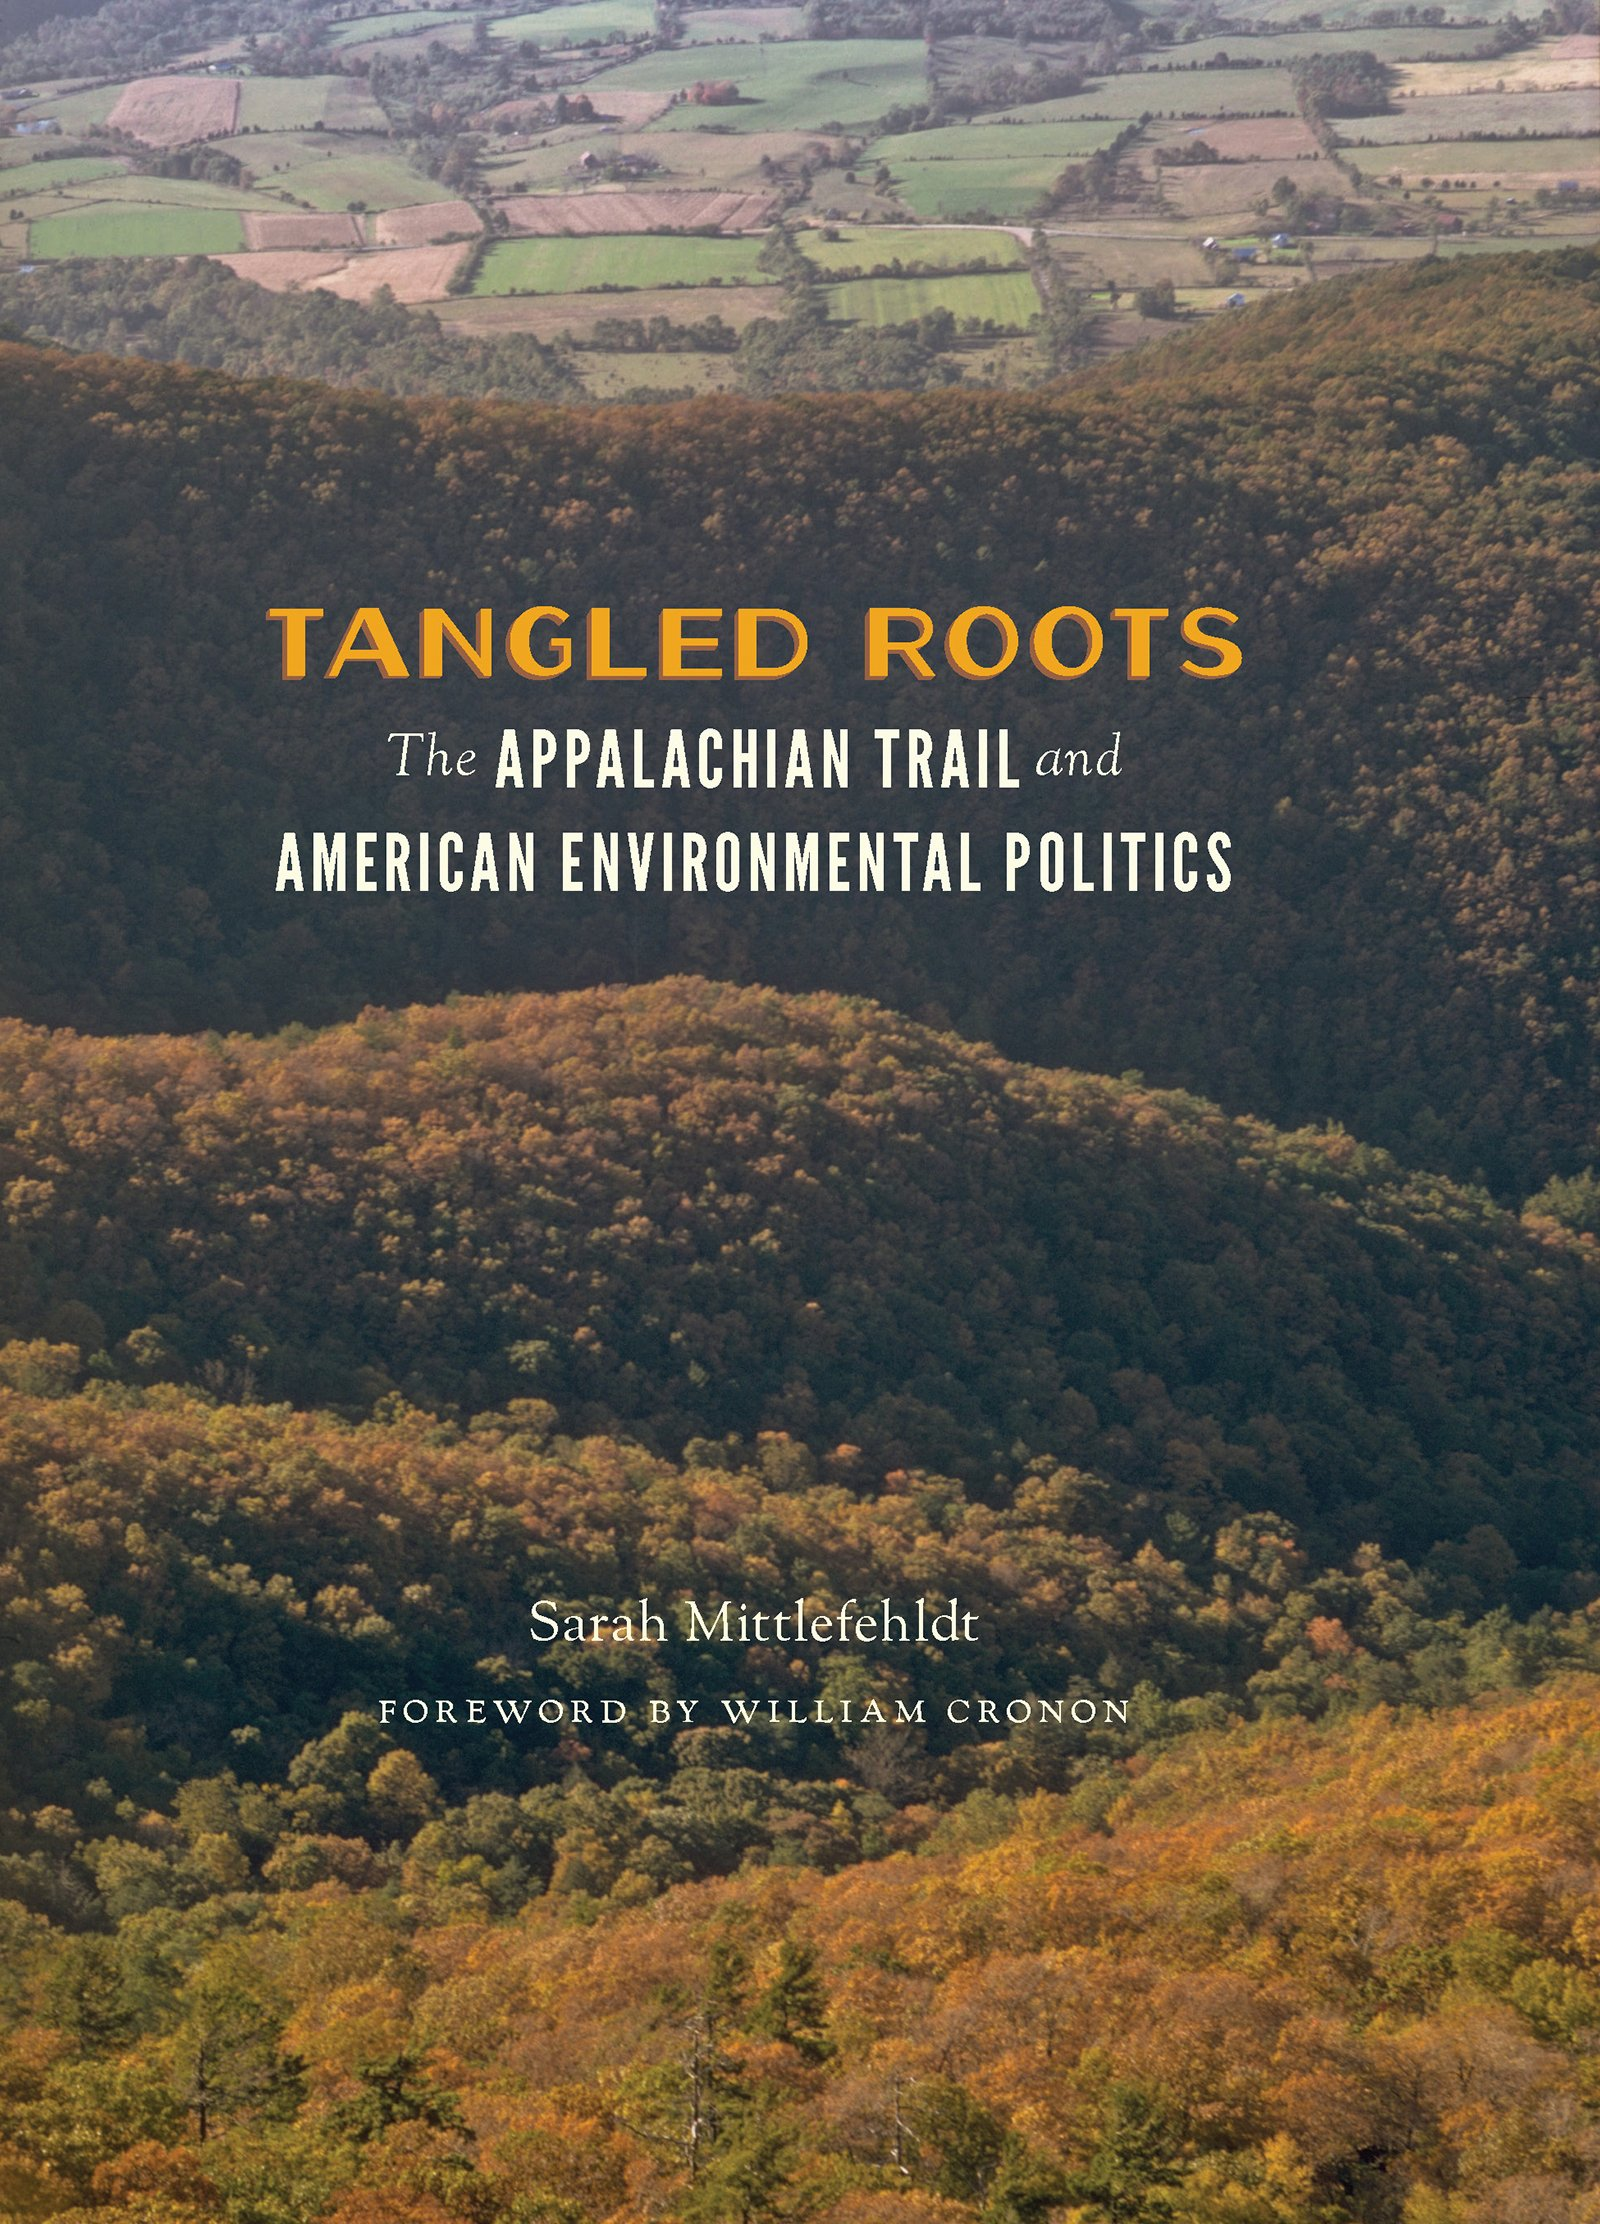 Tangled Roots: The Appalachian Trail and American